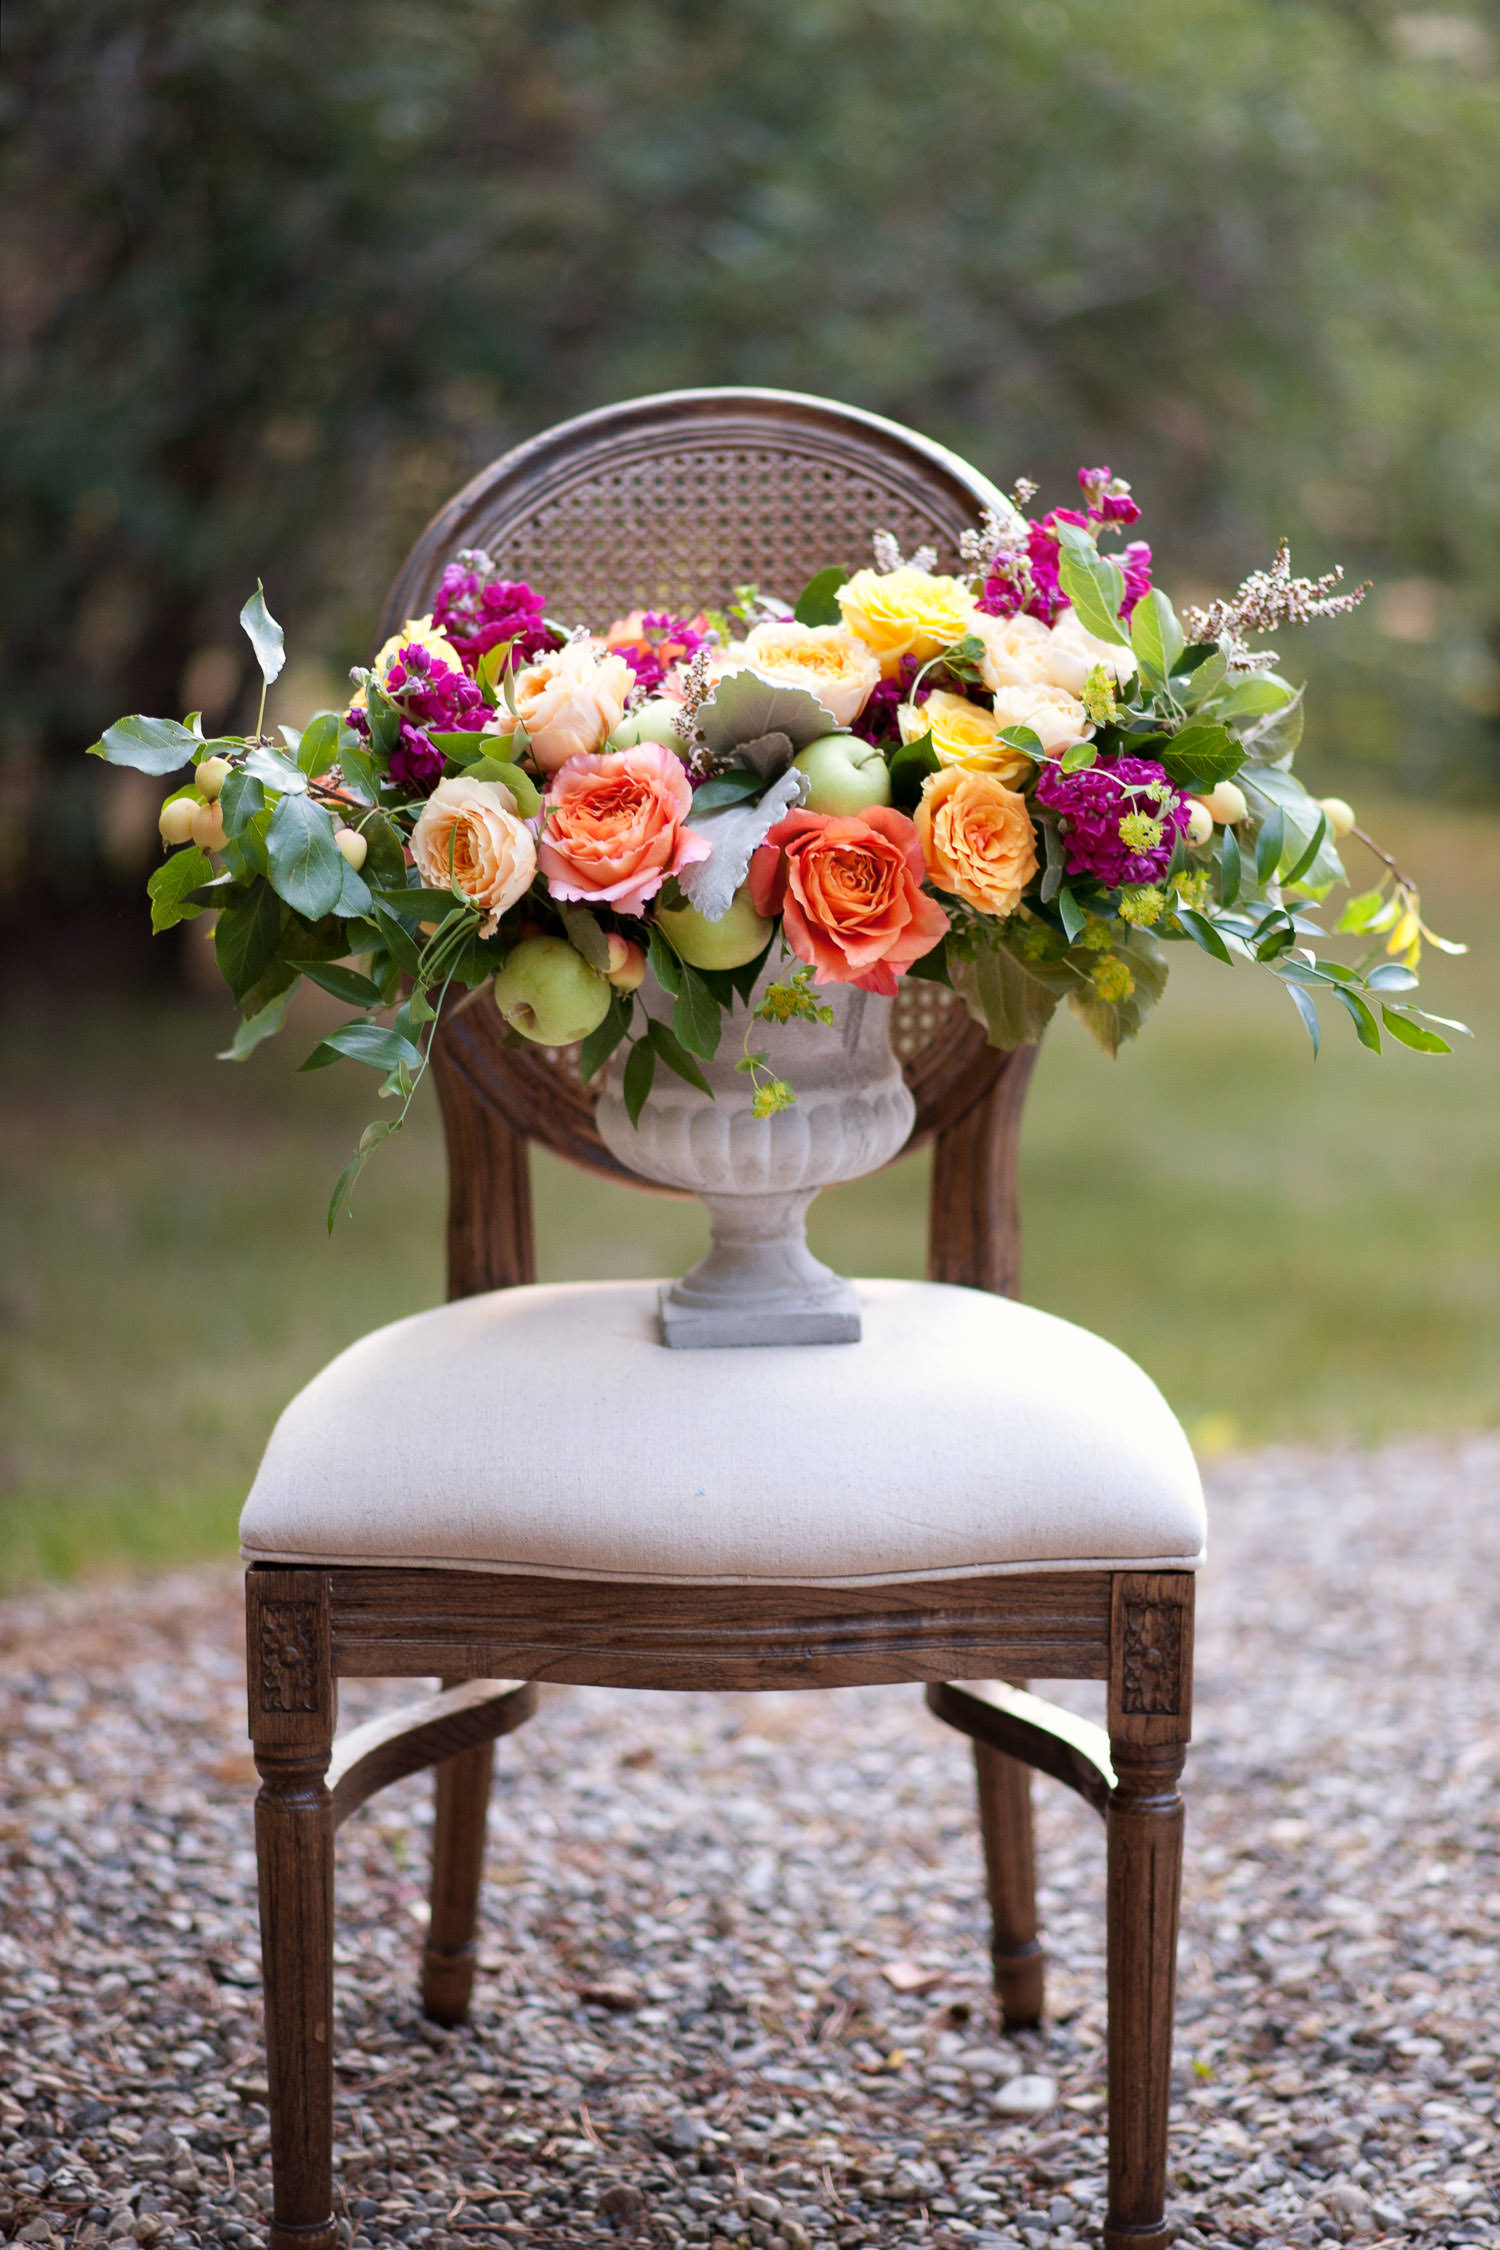 floral centerpiece sitting on a chair captured by Tara Whittaker Photography